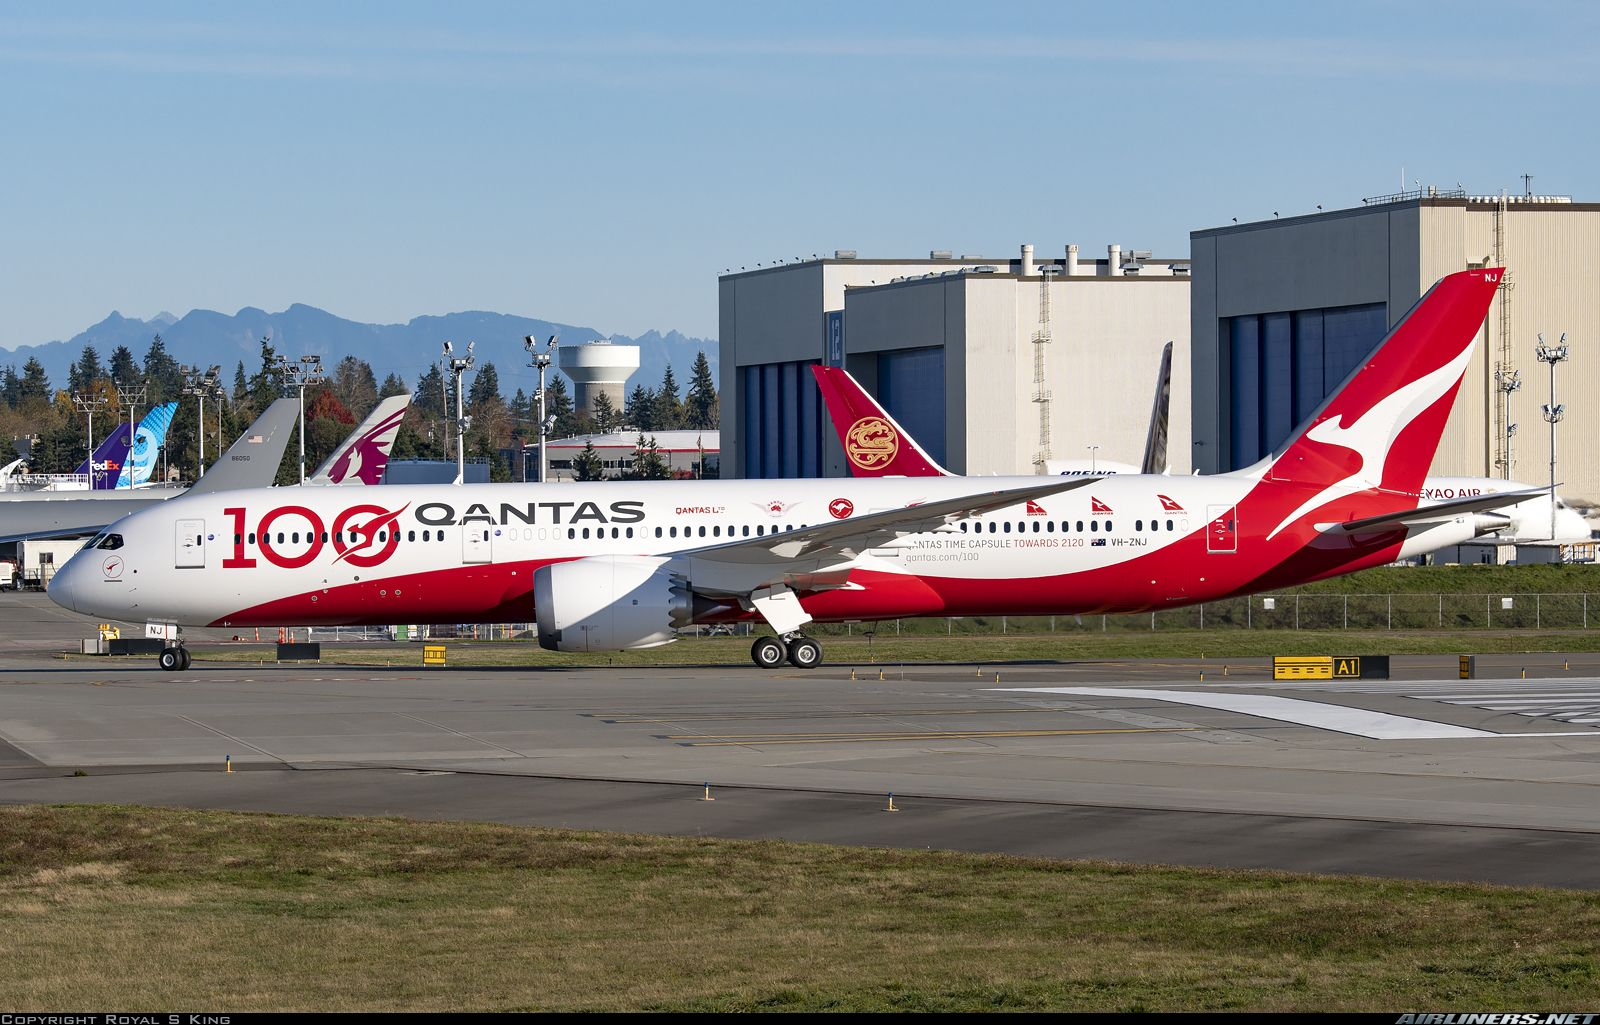 Longreach The 10th 787 For Qantas Wearing A Special Livery